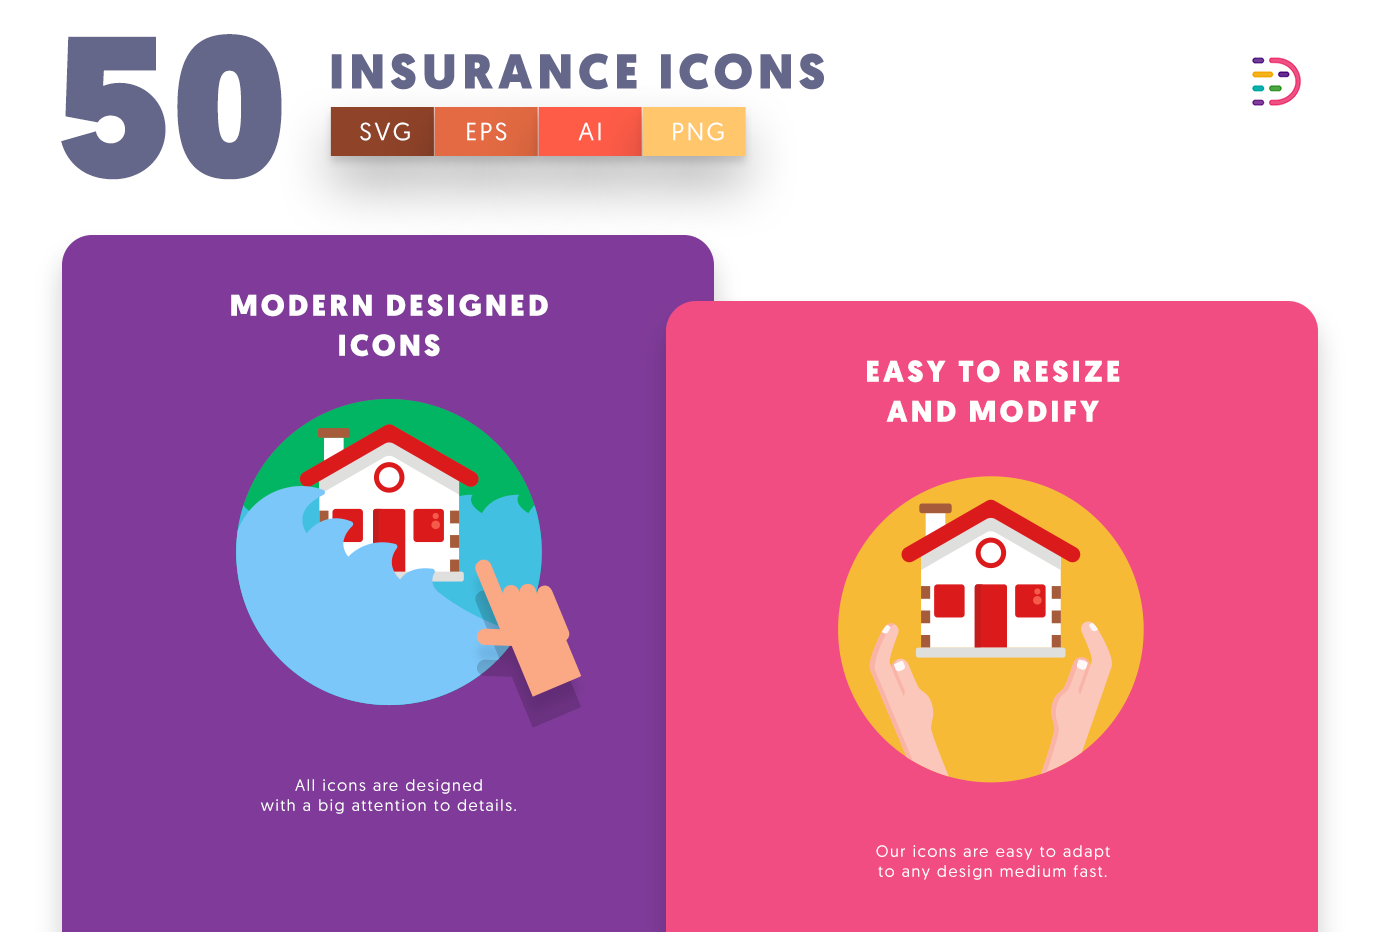 Insurance icons png/svg/eps